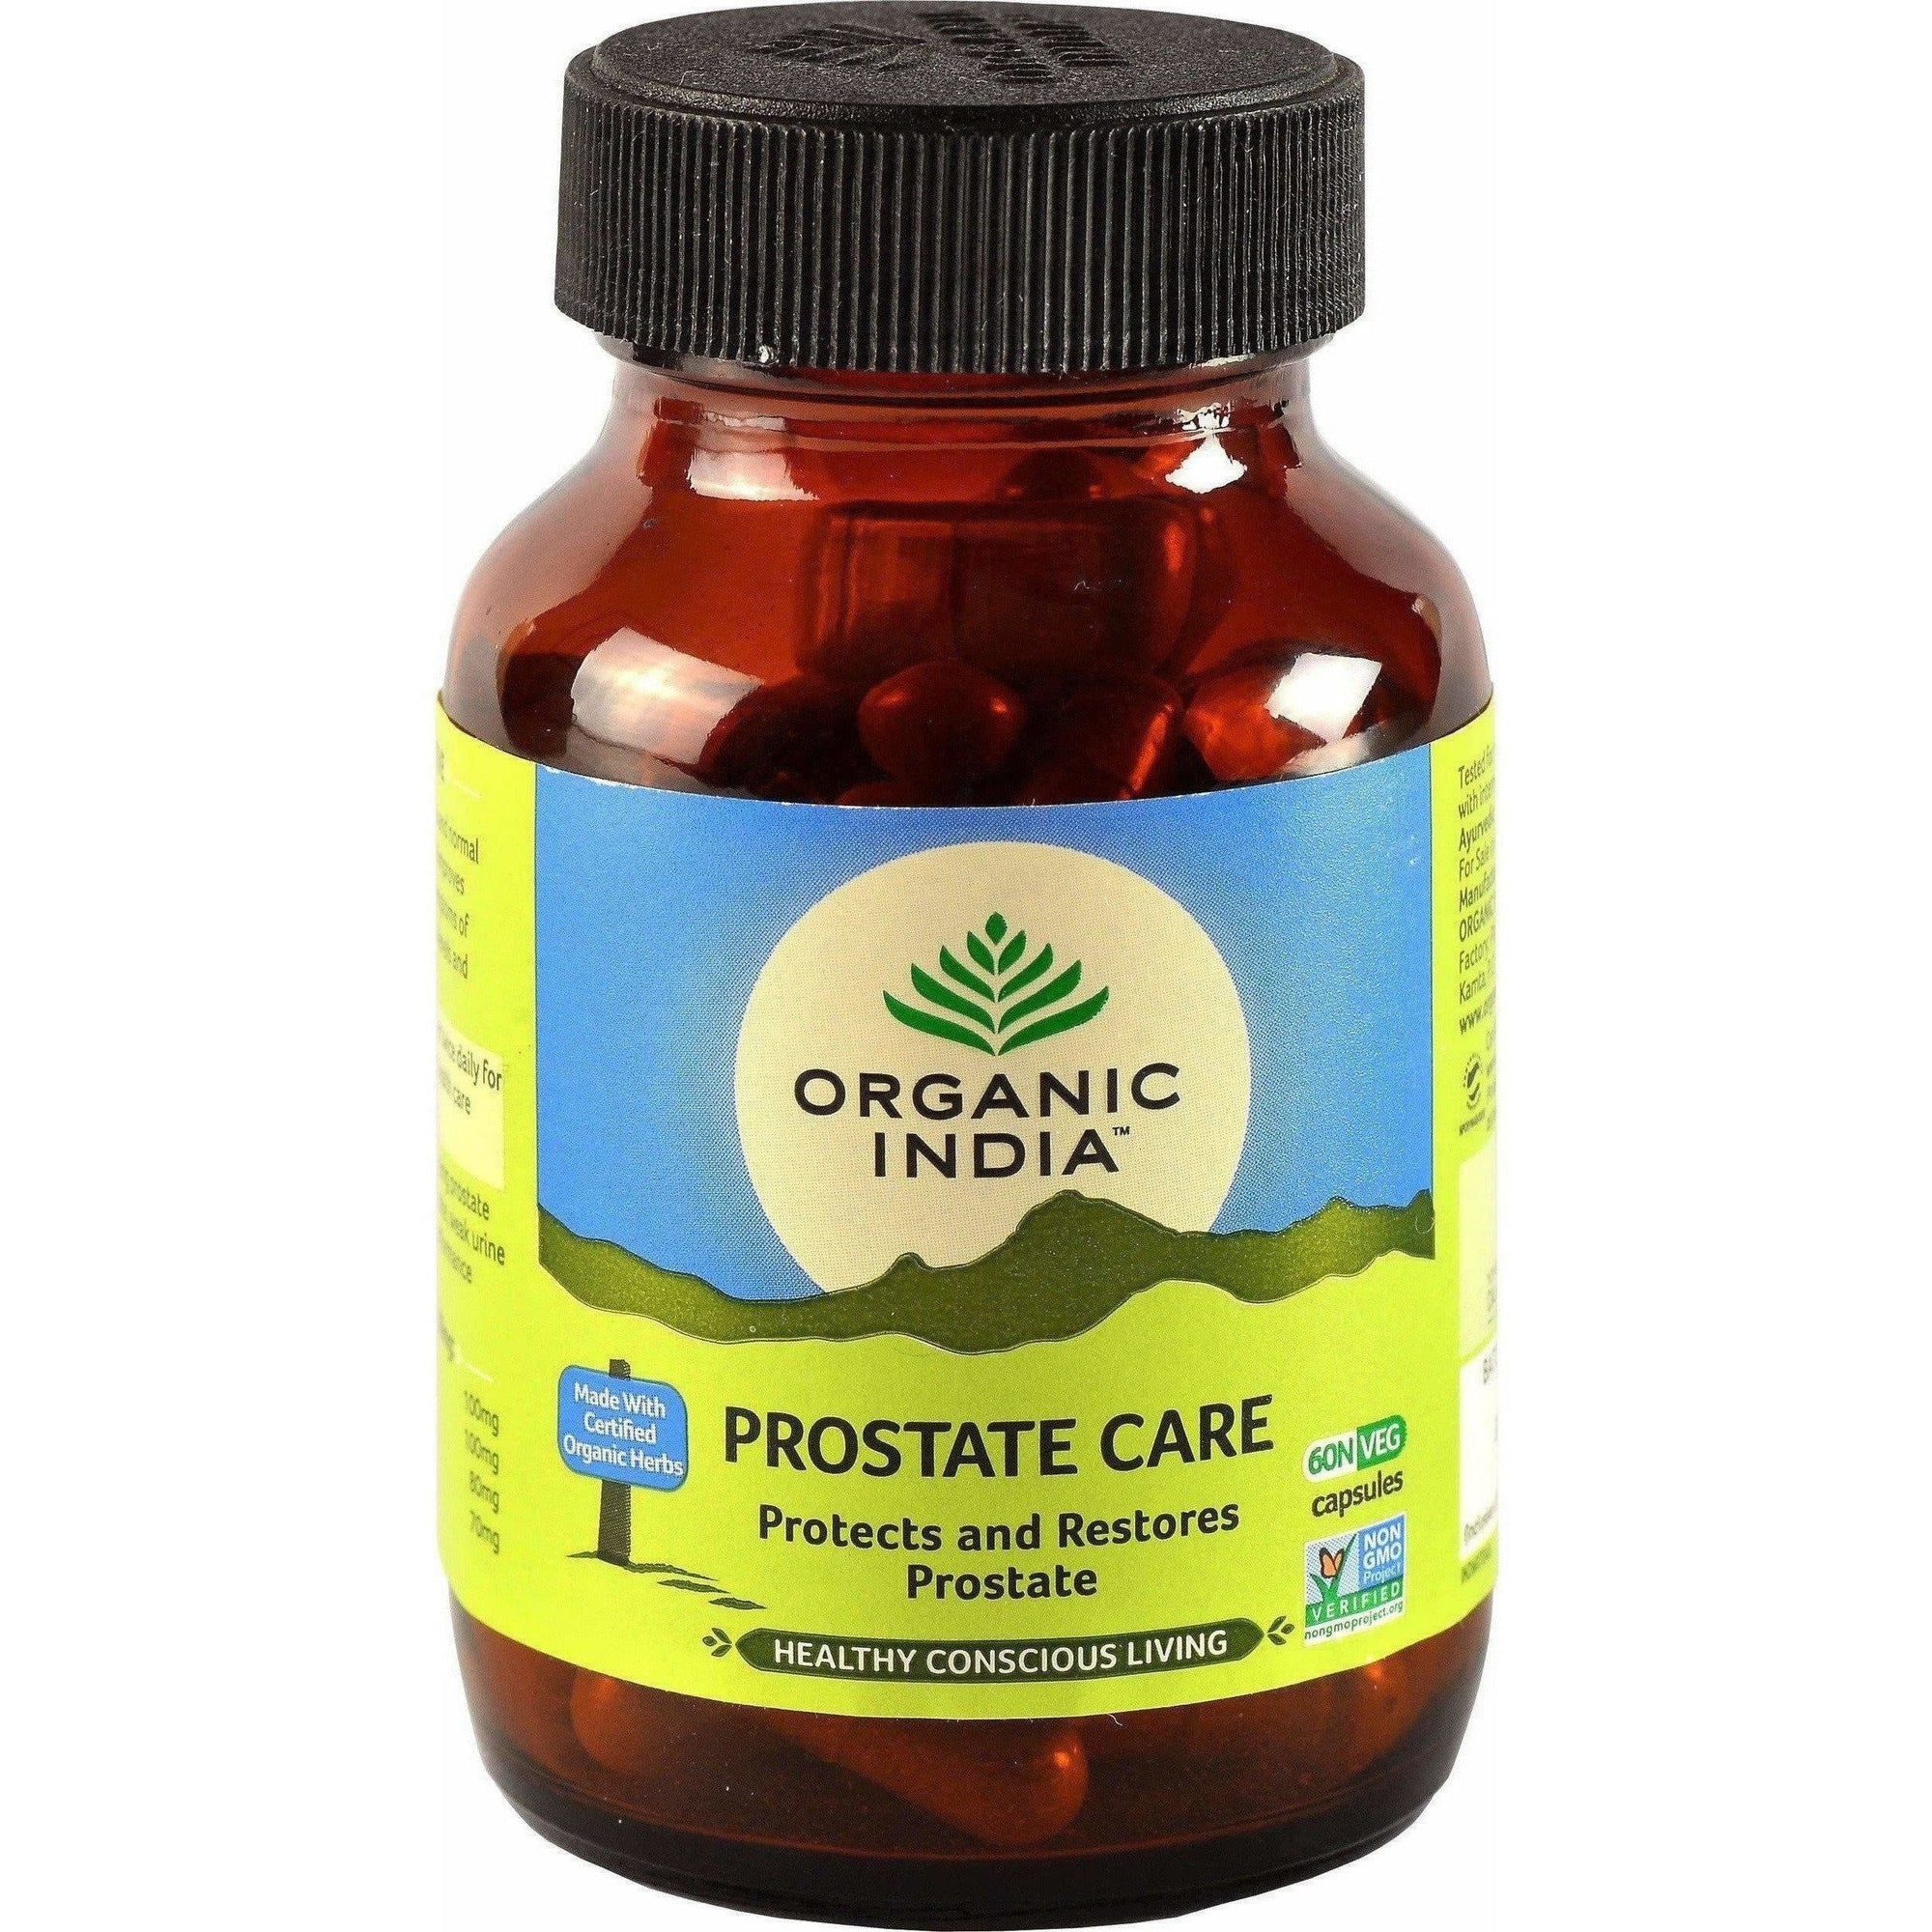 Organic India Prostate Care 60 Capsules Bottle